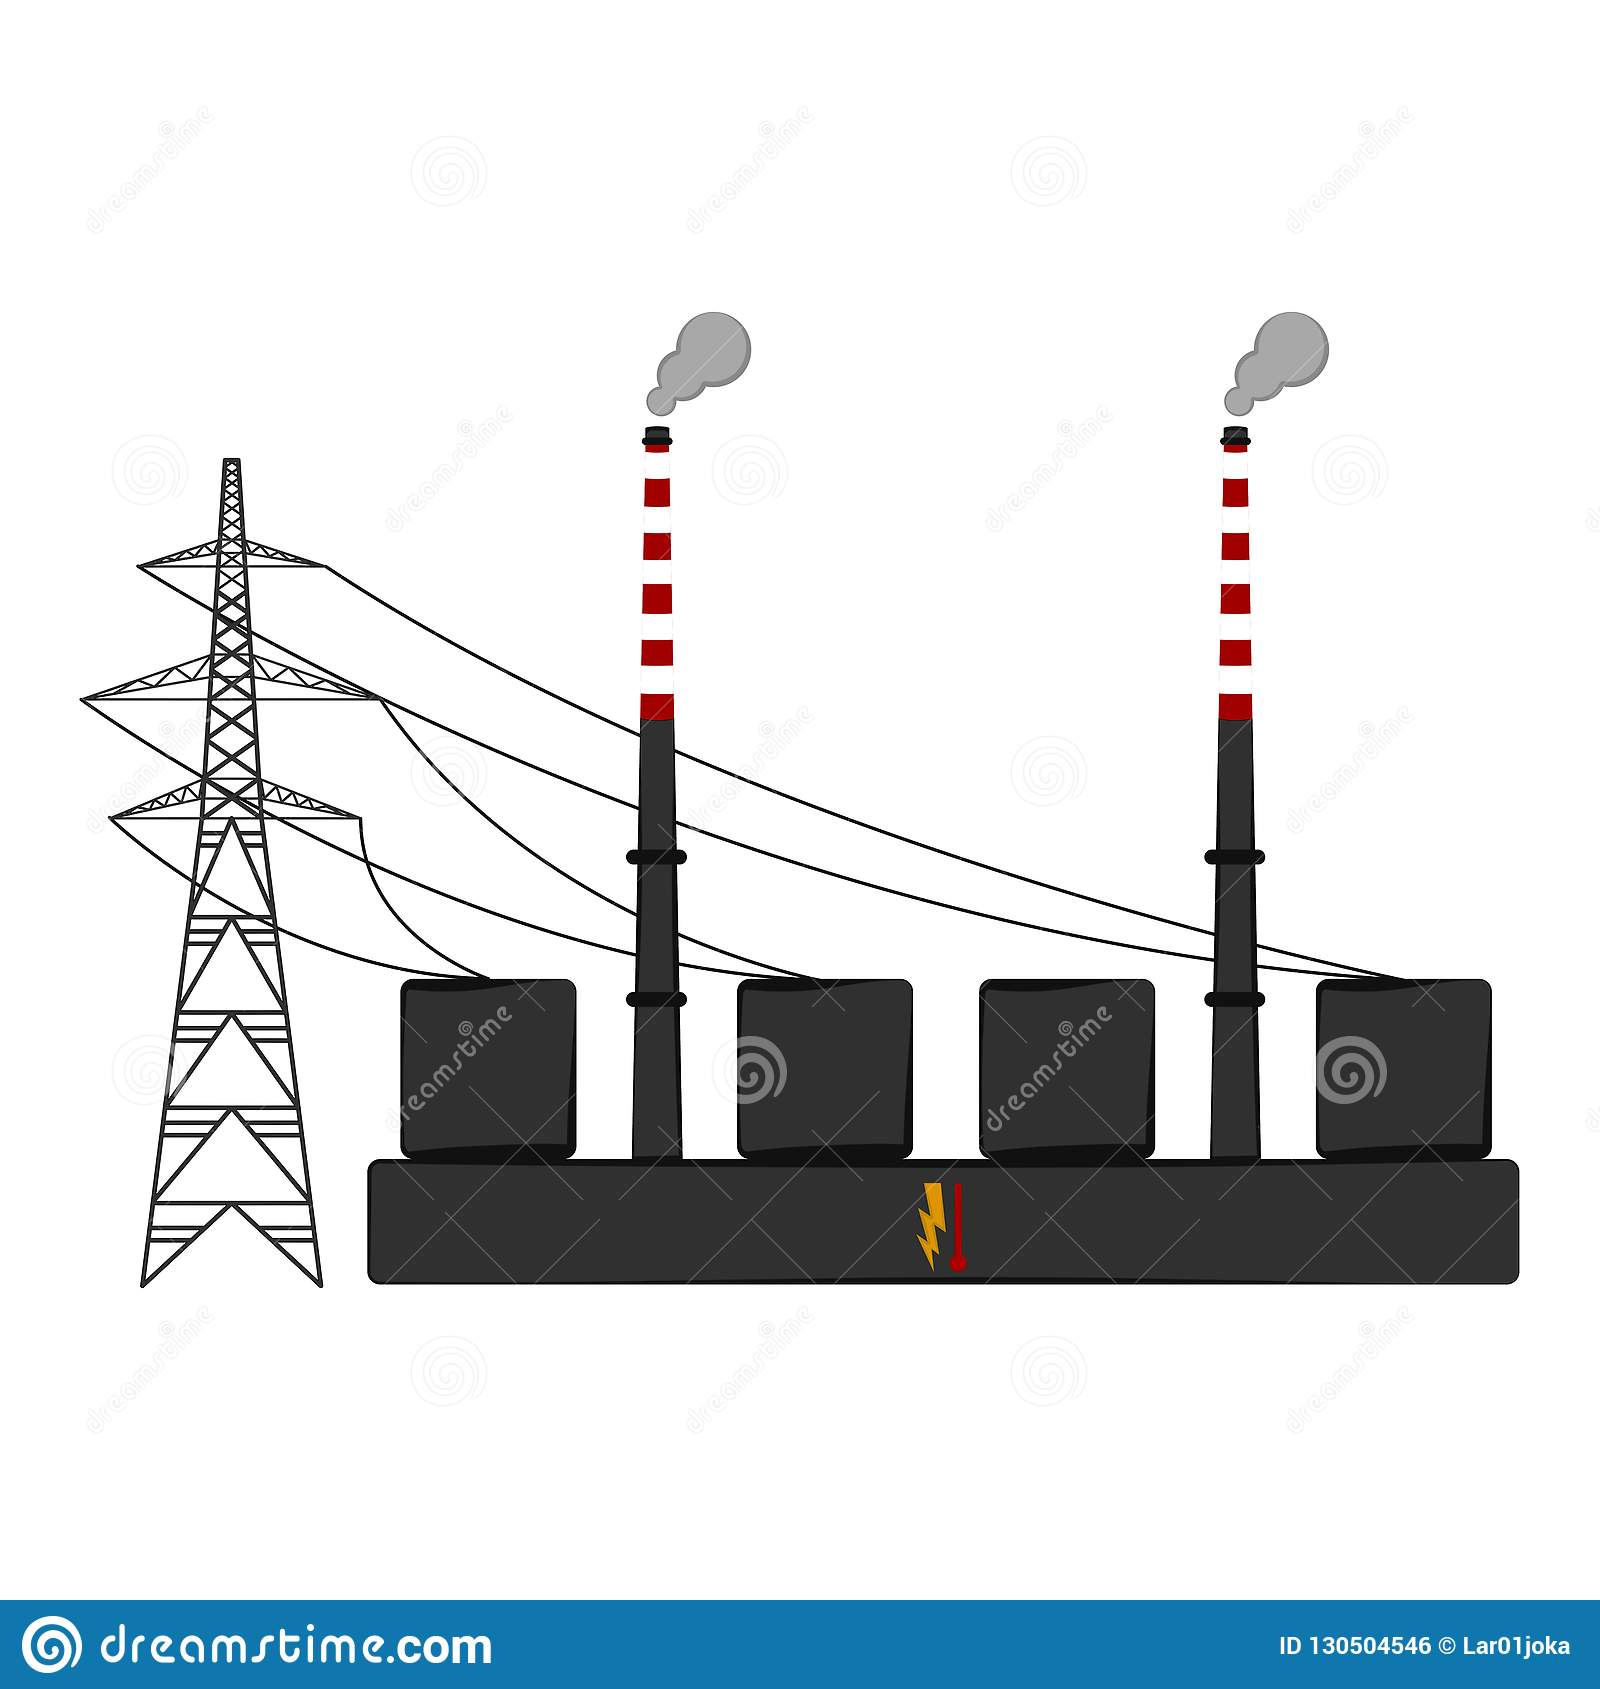 Isolated Coal Power Plant Stock Vector Illustration Of Energy 130504546